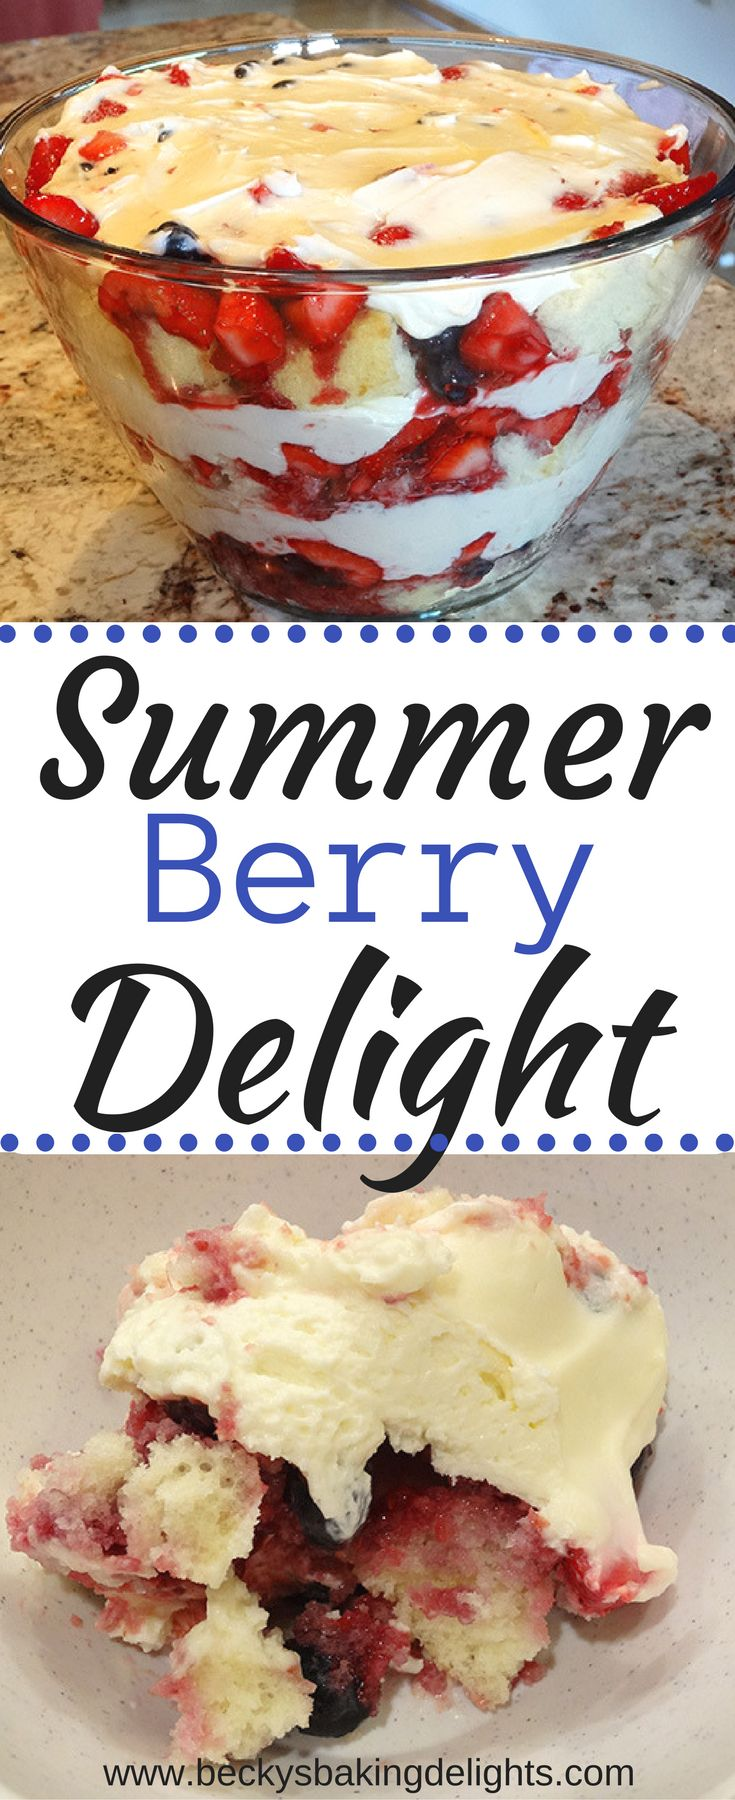 Fresh berries, a moist white cake, and homemade whipped cream. Delicious and light tasting. Great to serve for a crowd or at a party.